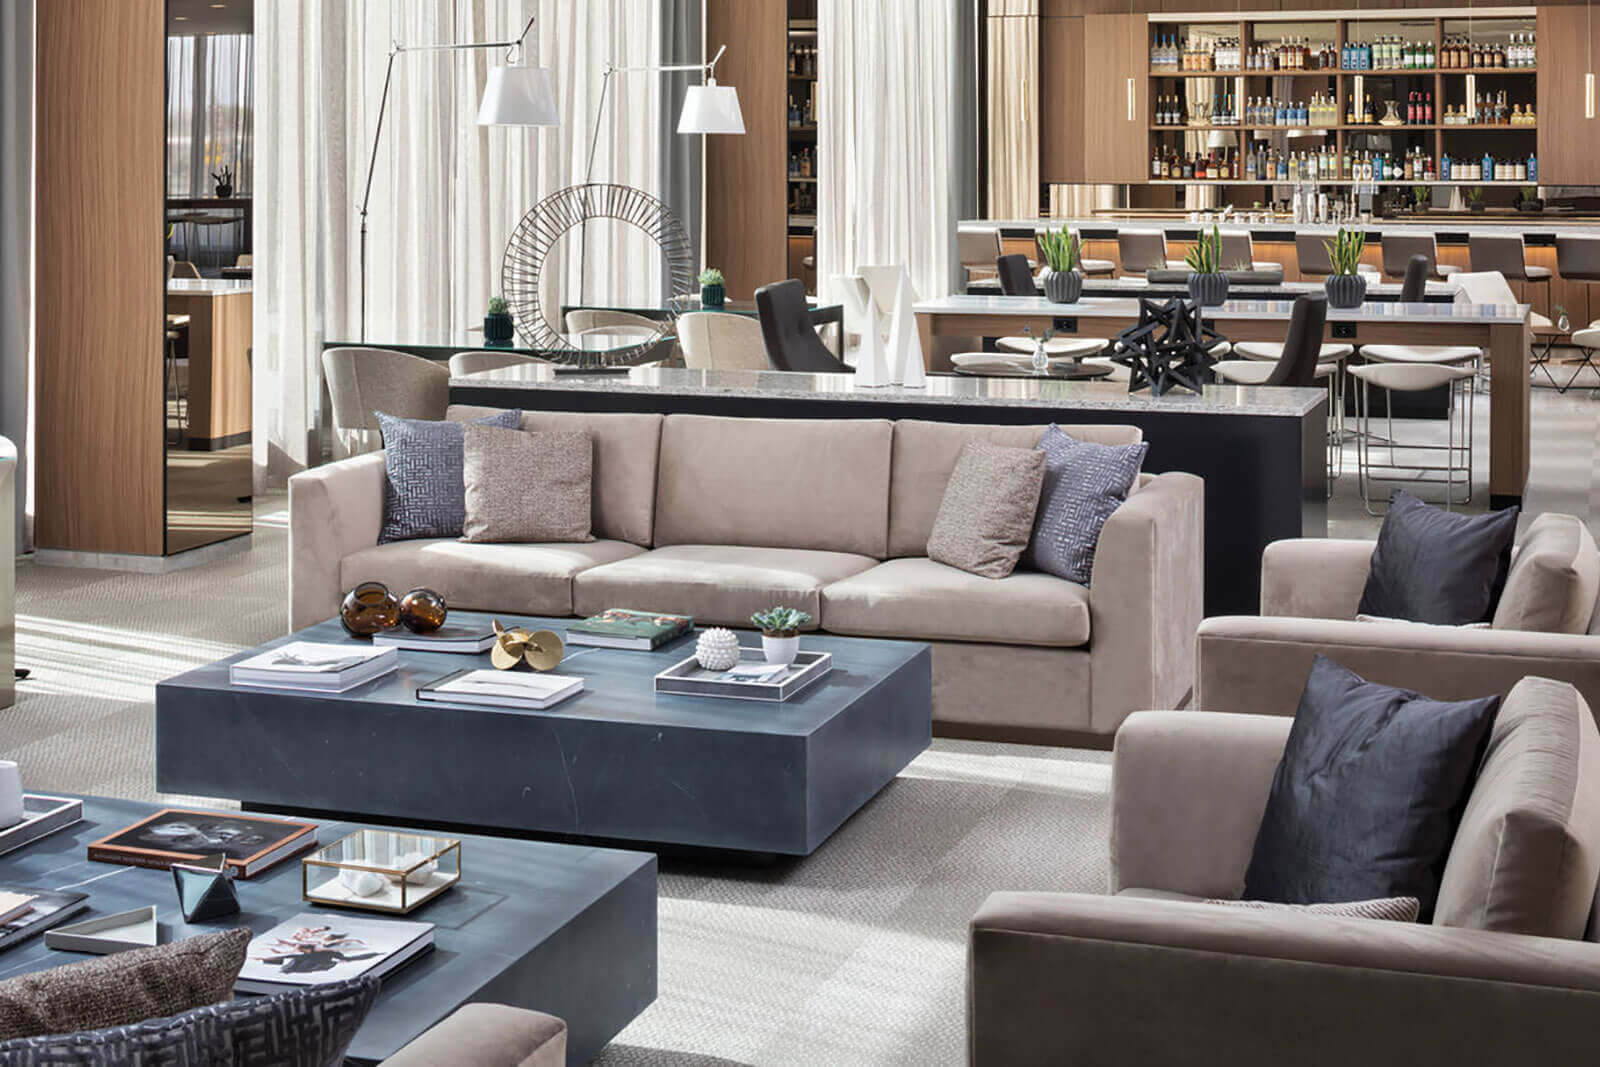 ac hotel bloomington mall of america hotels in. Black Bedroom Furniture Sets. Home Design Ideas